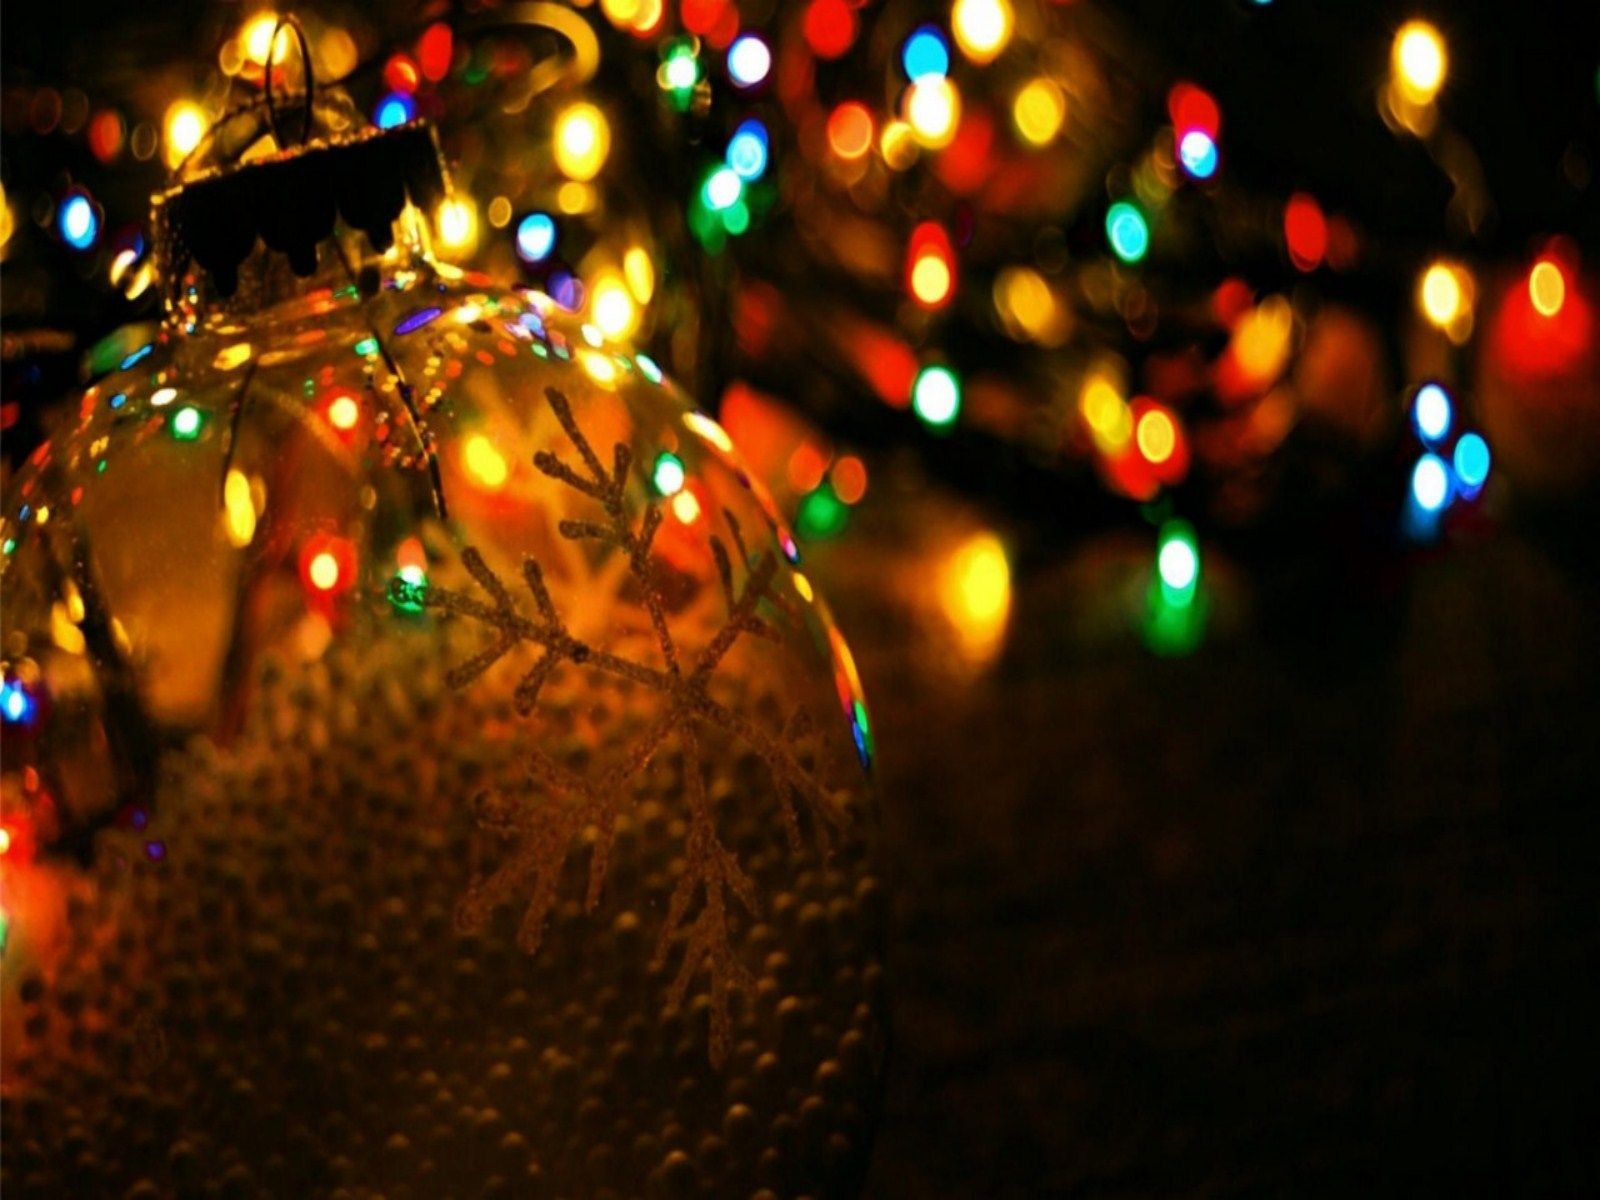 christmas lights photos christmas lights background wallpaper 1600x1200 233667